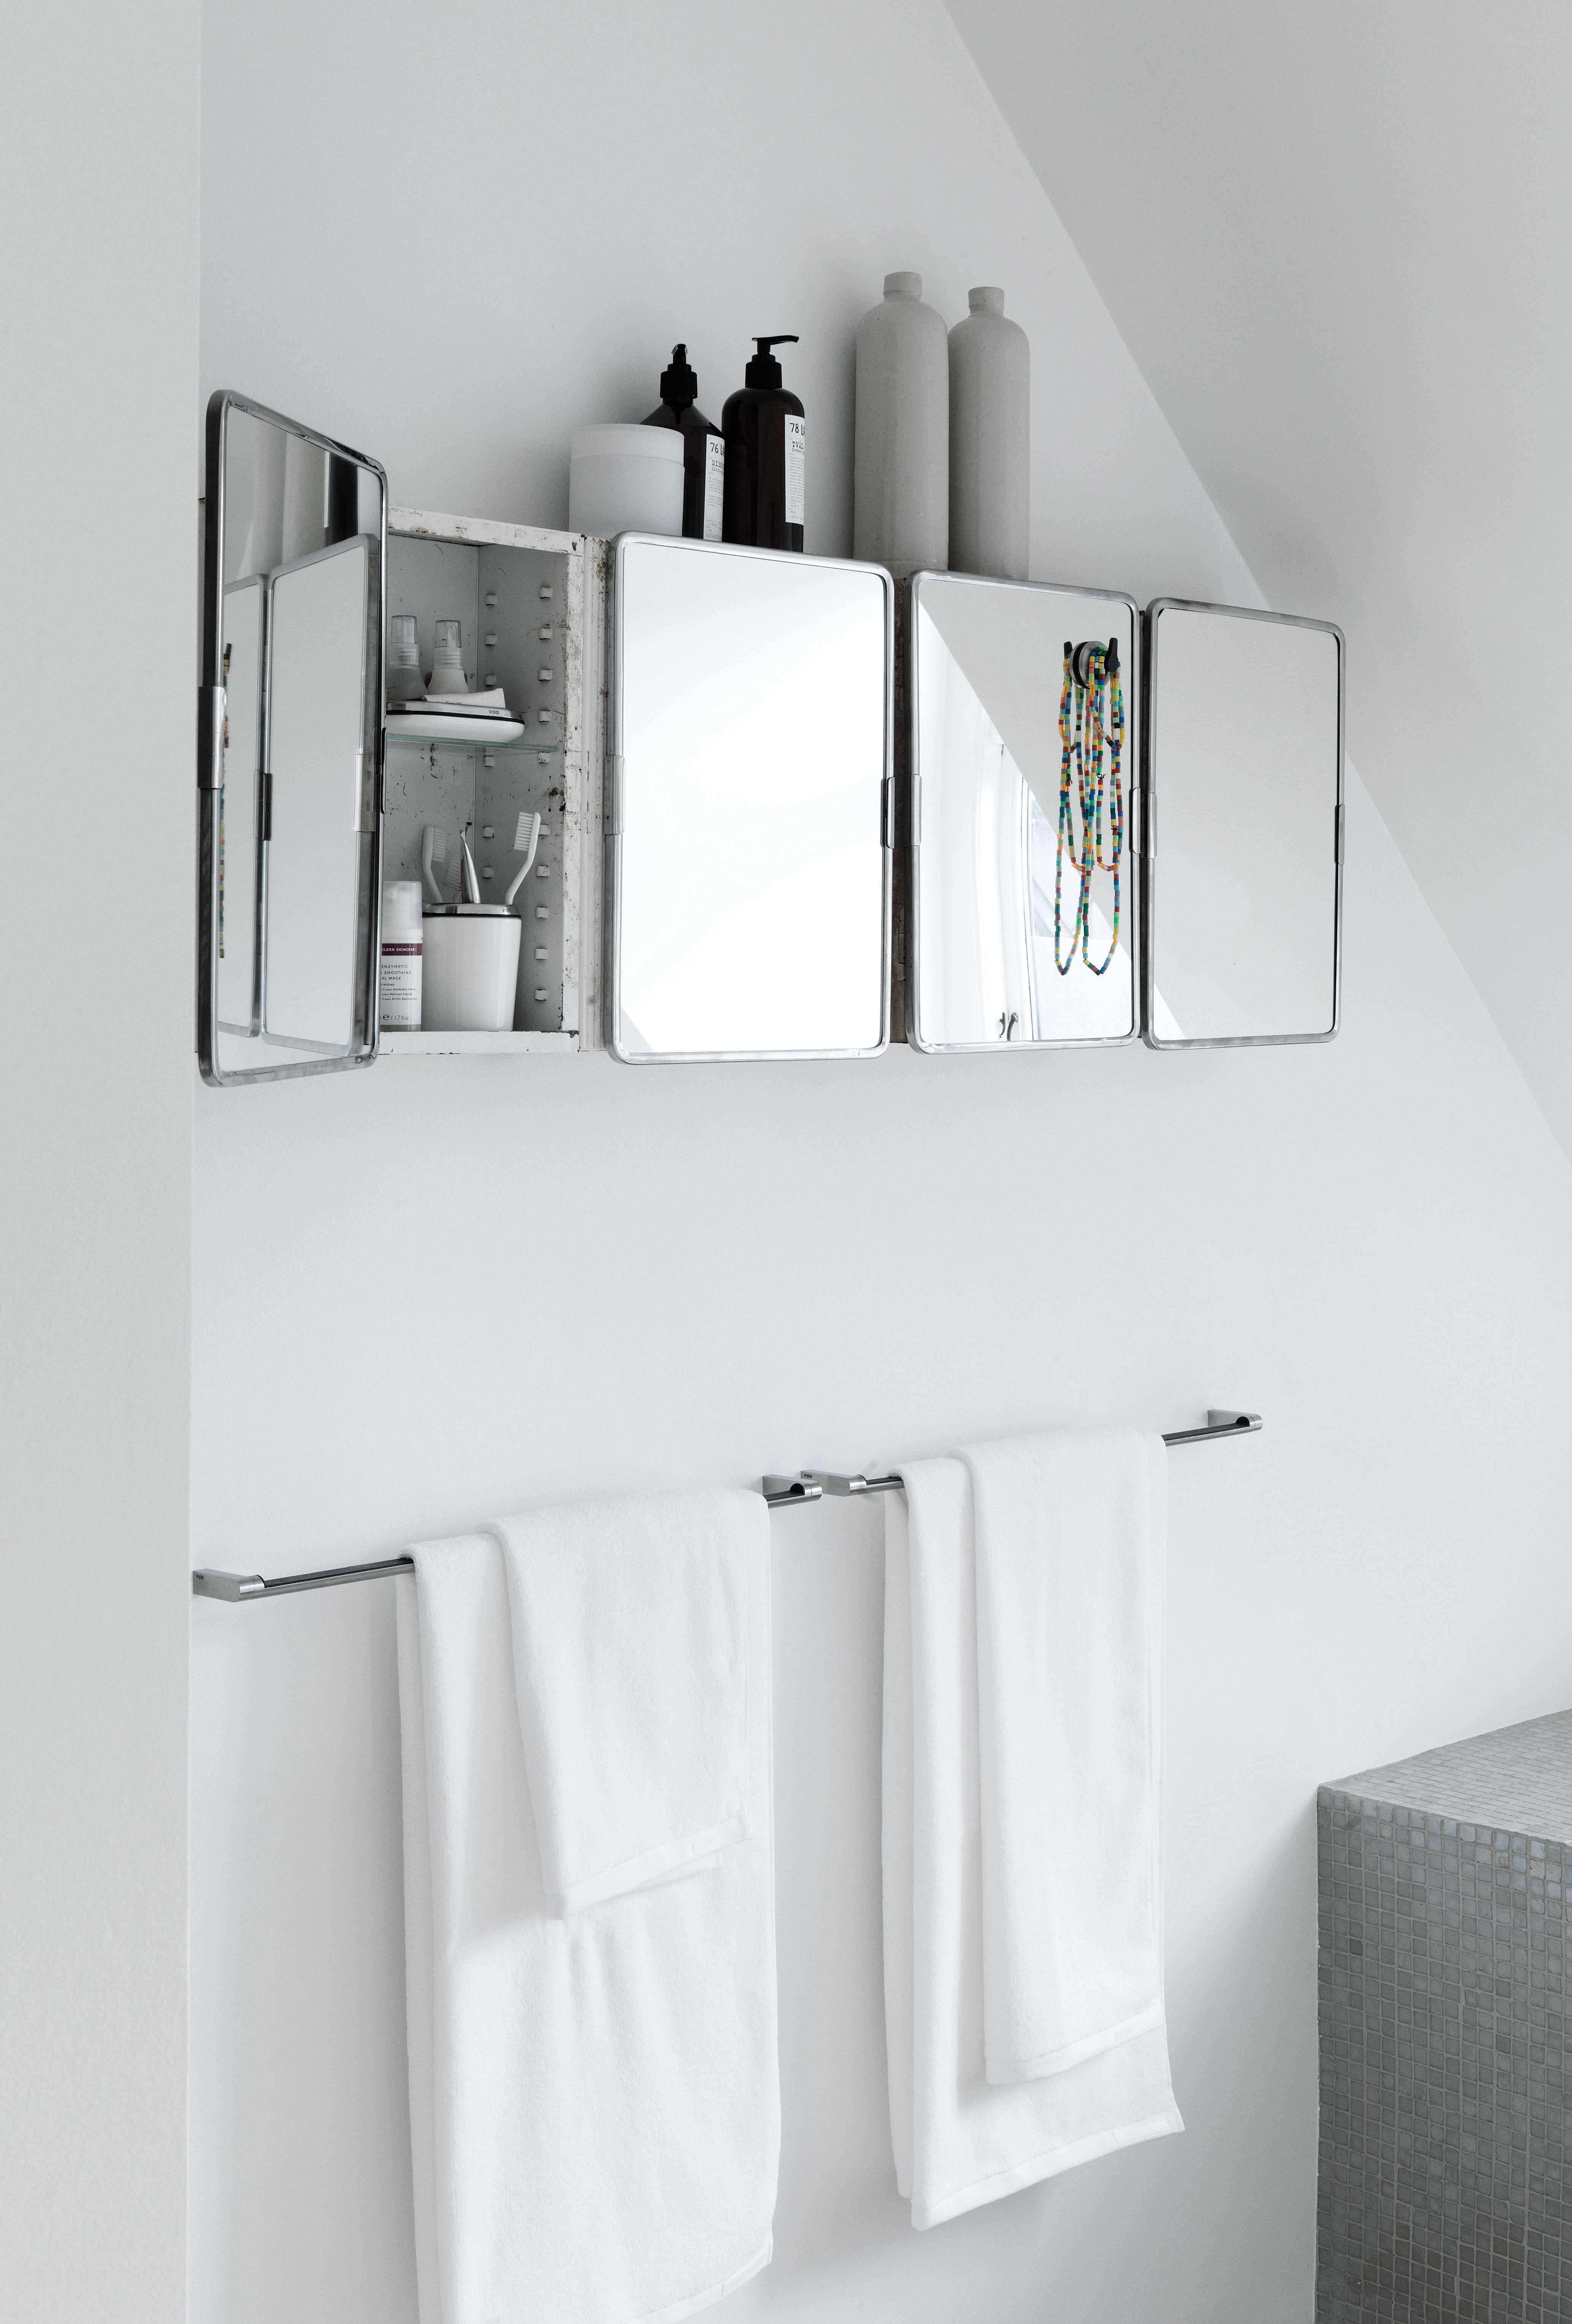 Inspirational Above Four medicine cabinets create both design interest and needed storage Photograph courtesy of Vipp